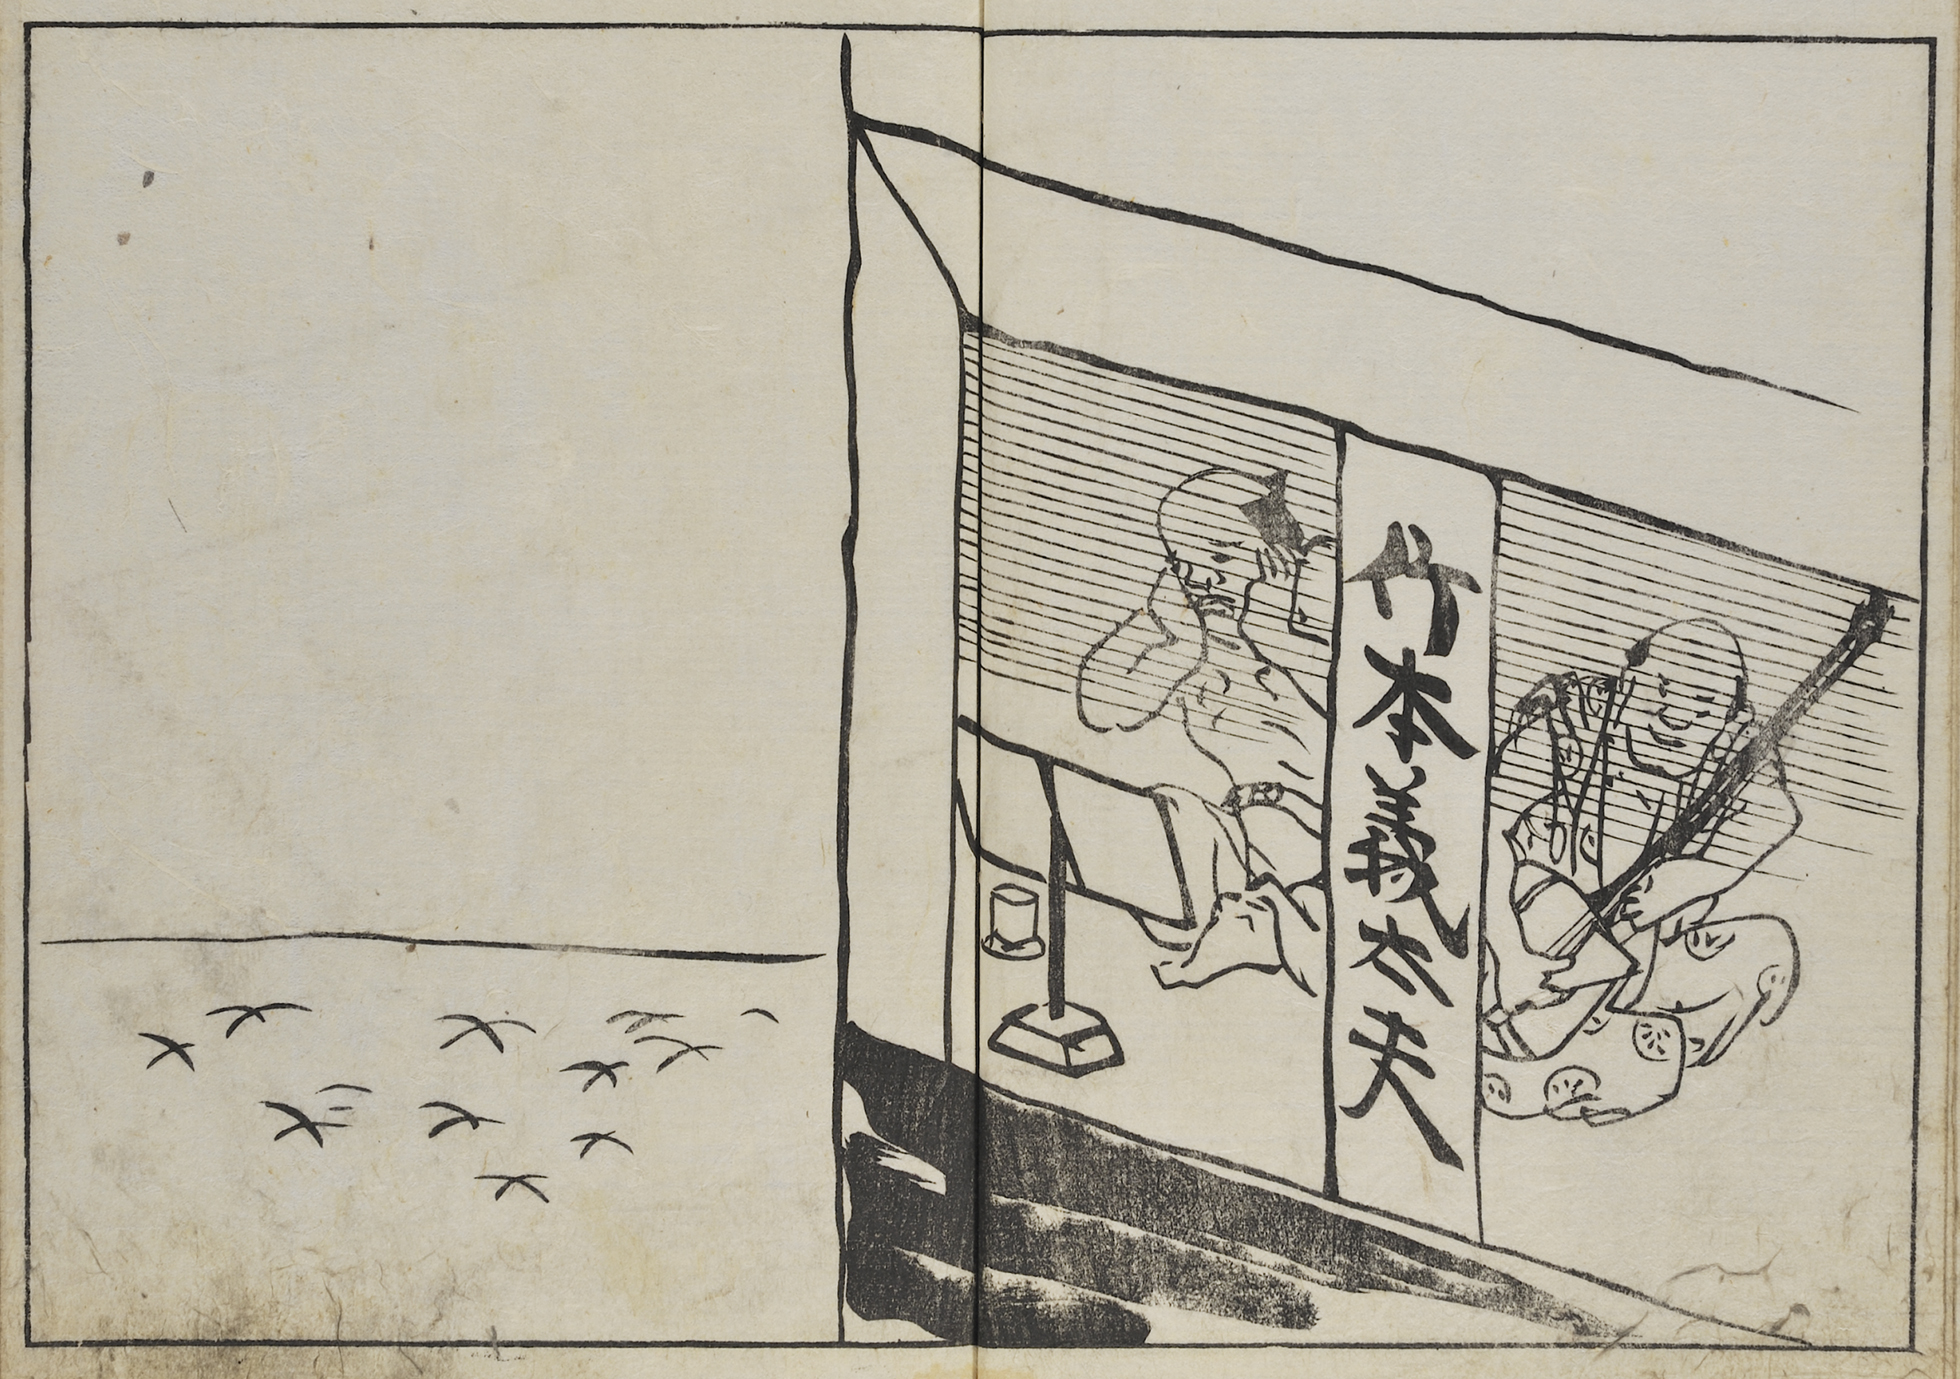 A colour woodblock print showing the three-stringed shamisen instrument being played in a room with two men.